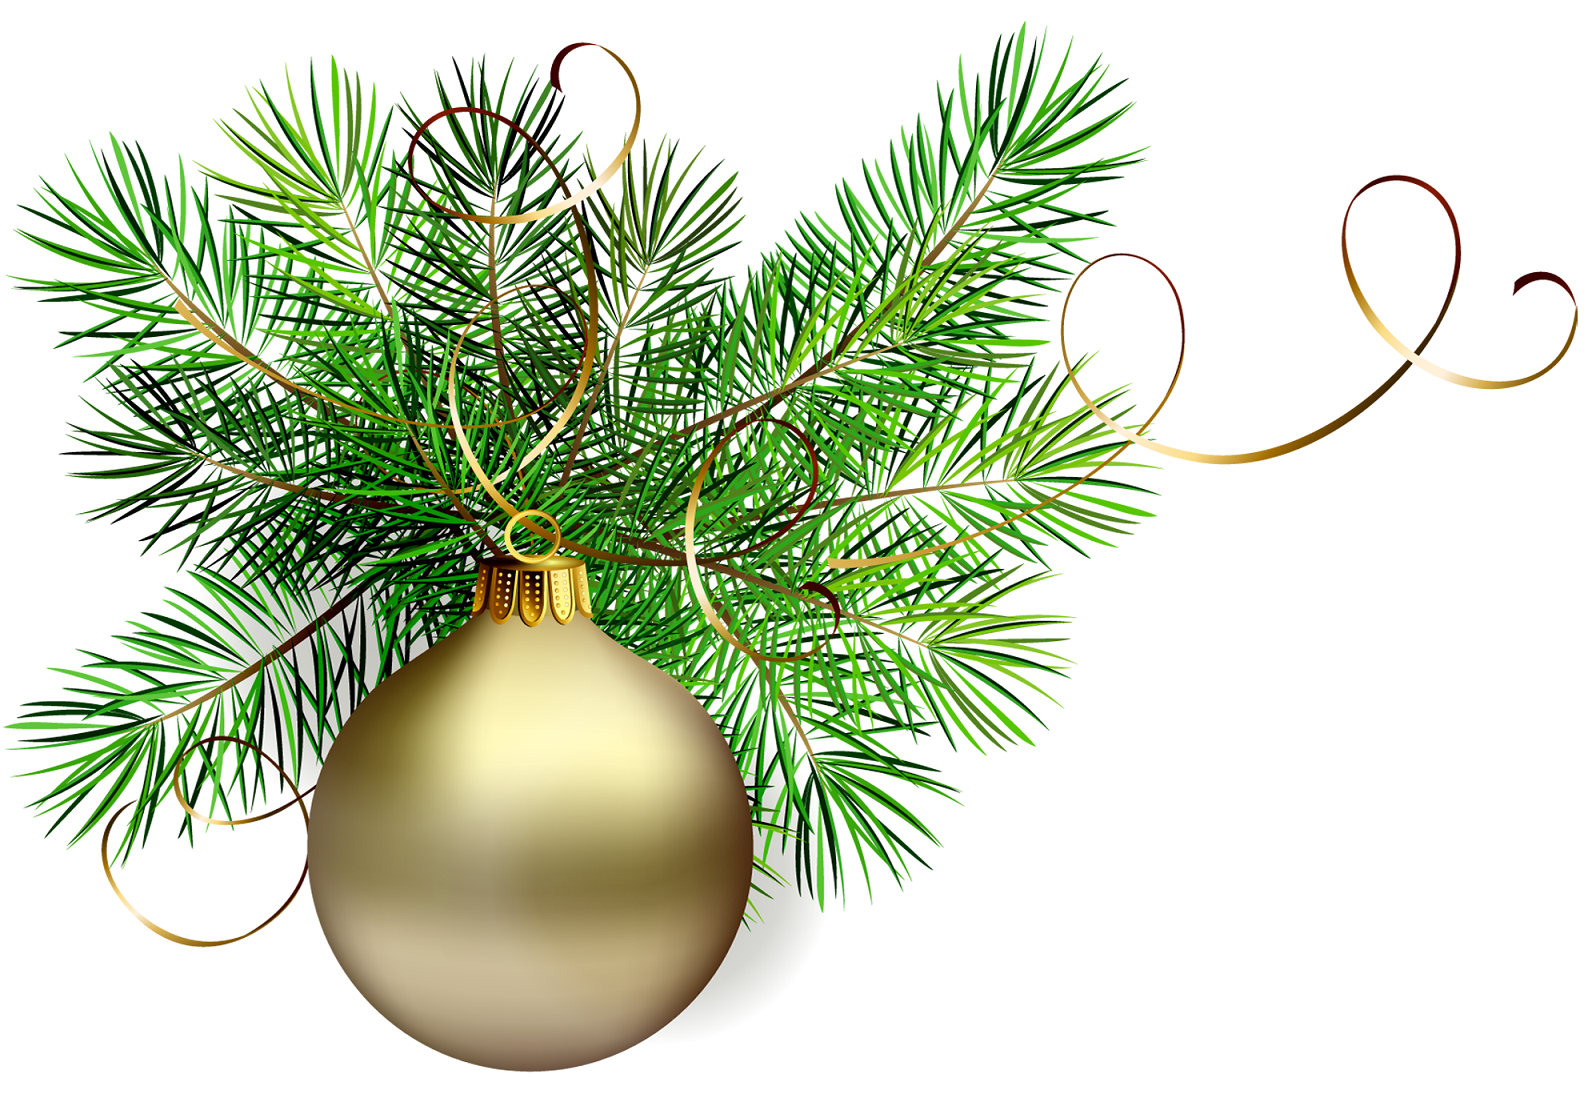 Gold Christmas Bulb On A Pine Branch Clip Art Holiday